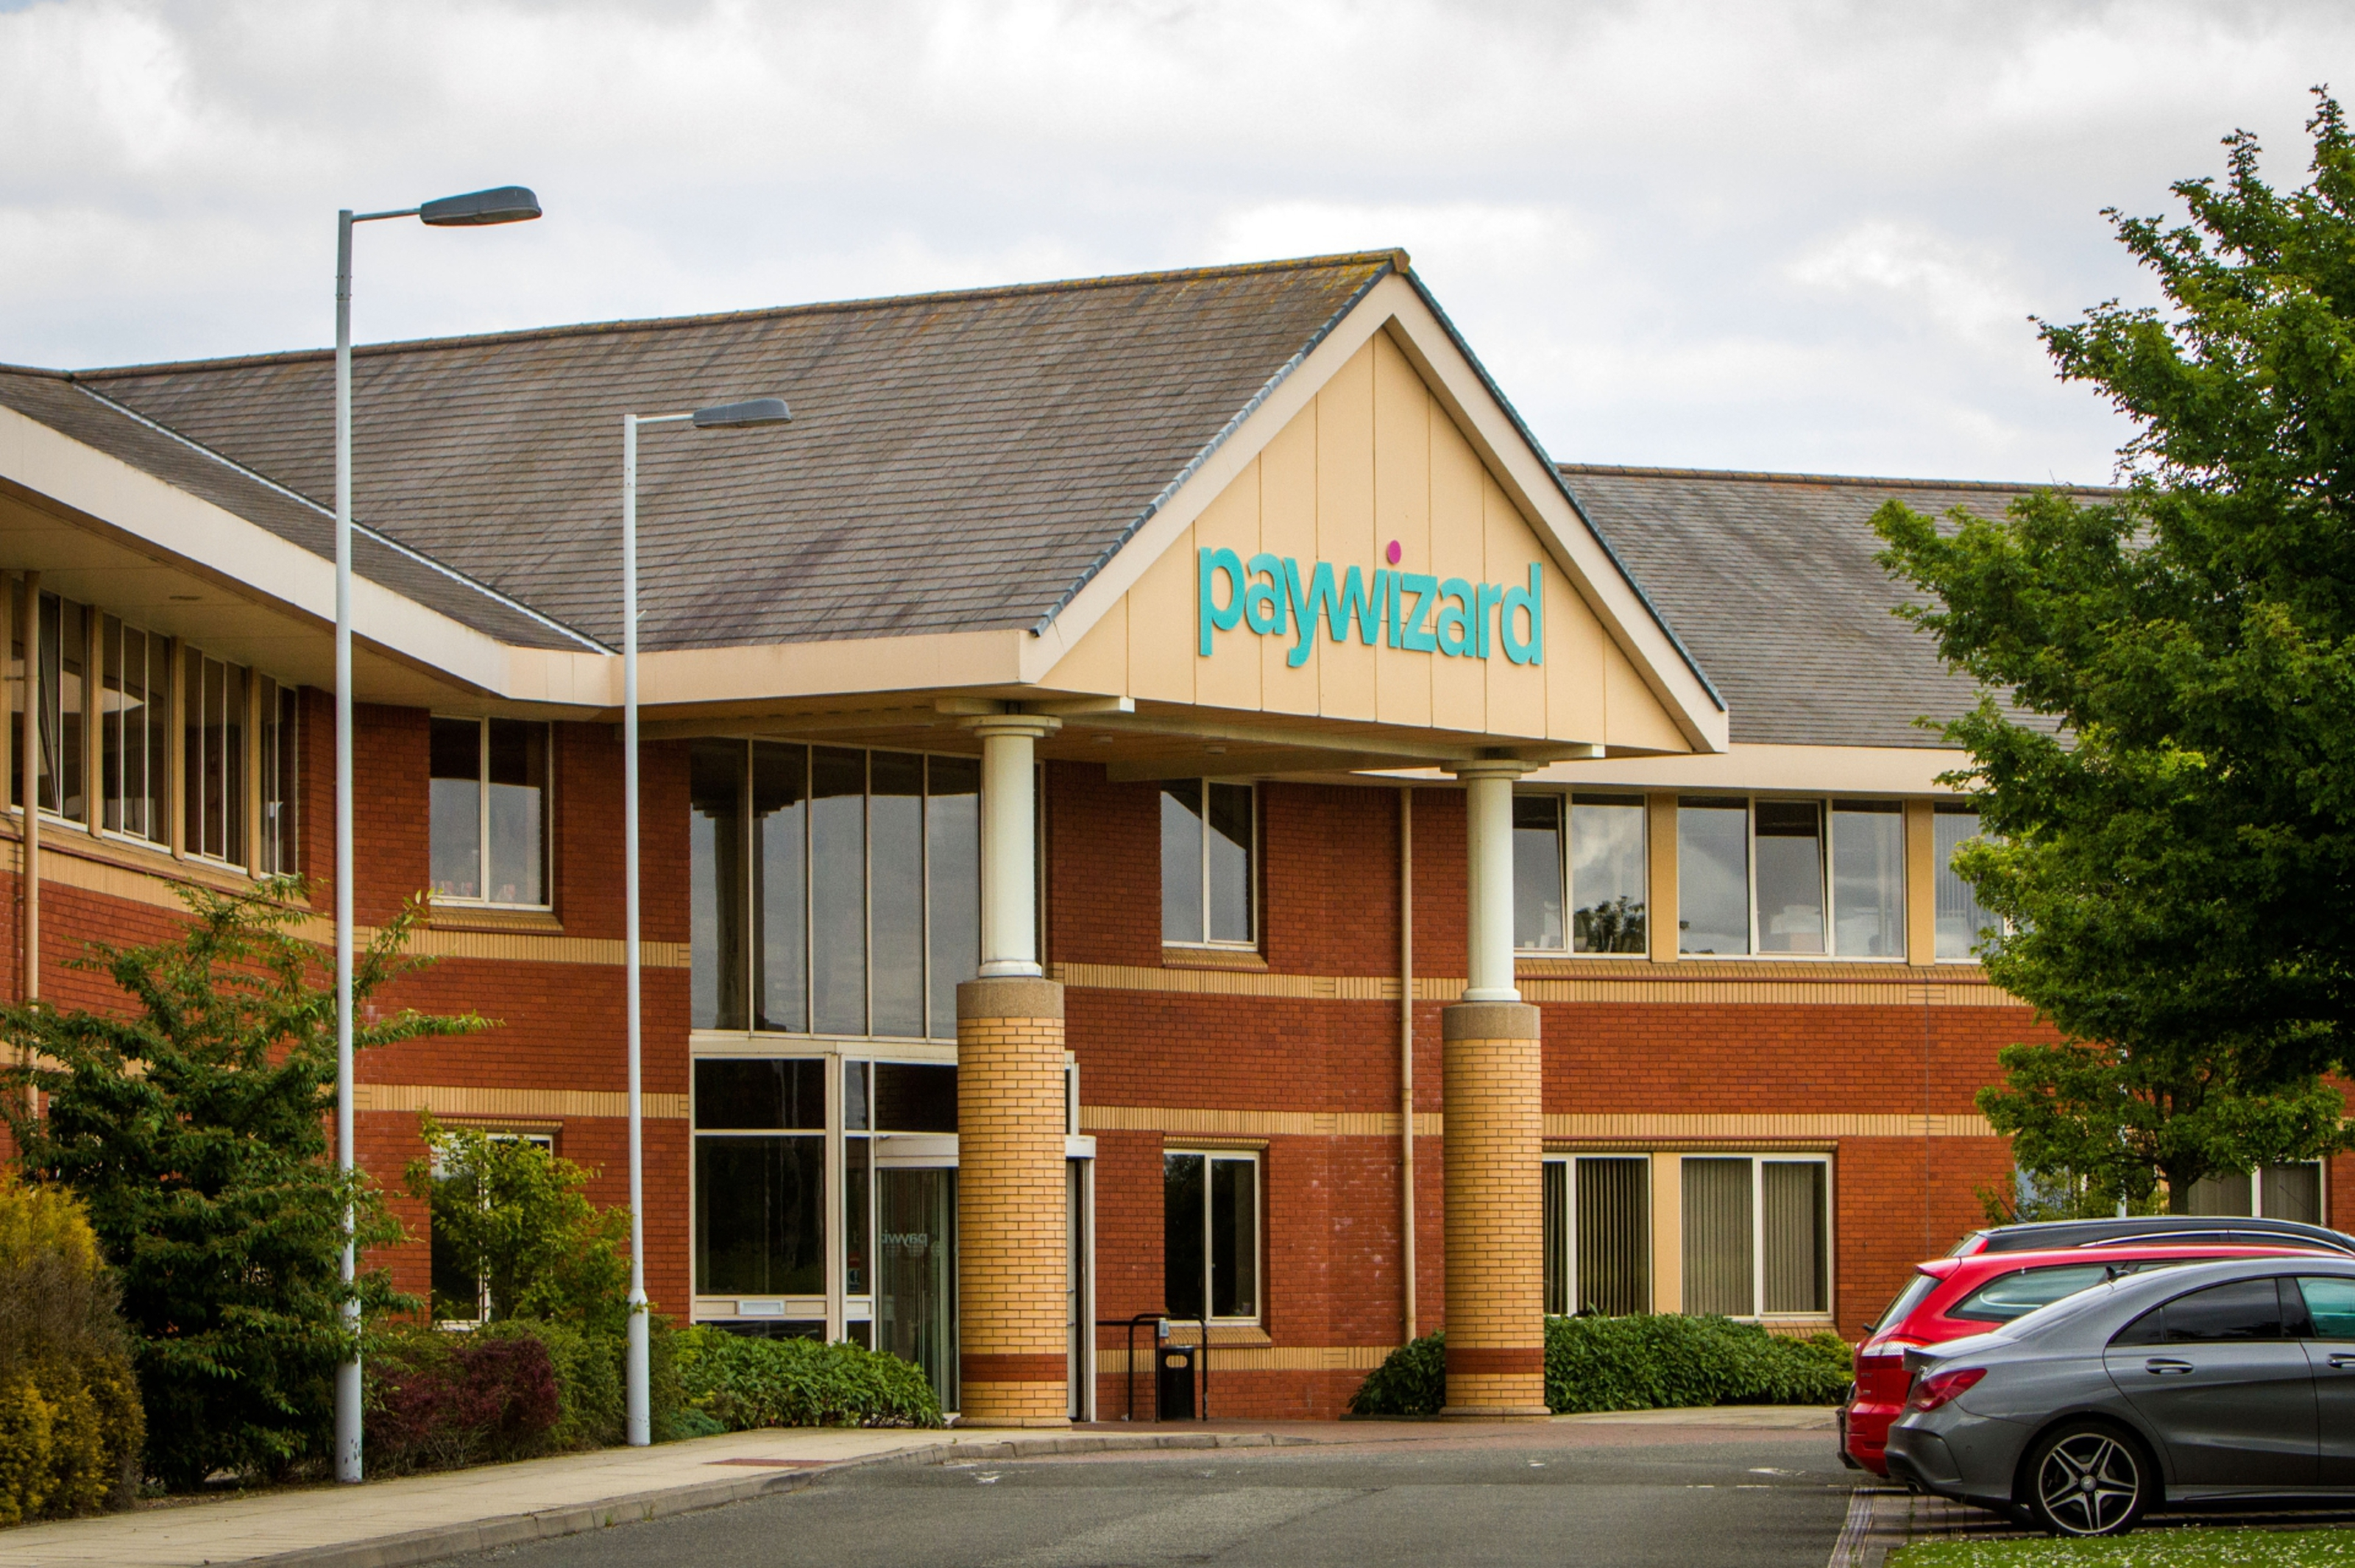 The Paywizard headquarters at John Smith Business Park, Kirkcaldy.